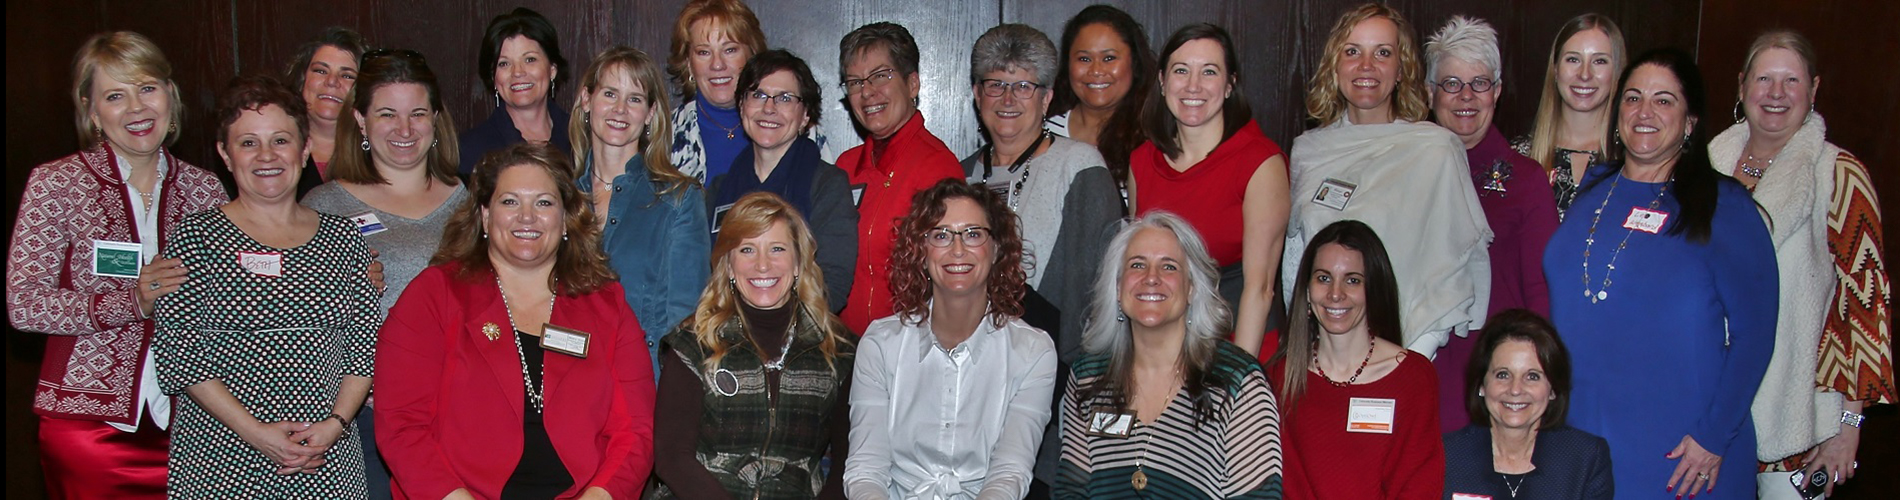 Colorado Business Women